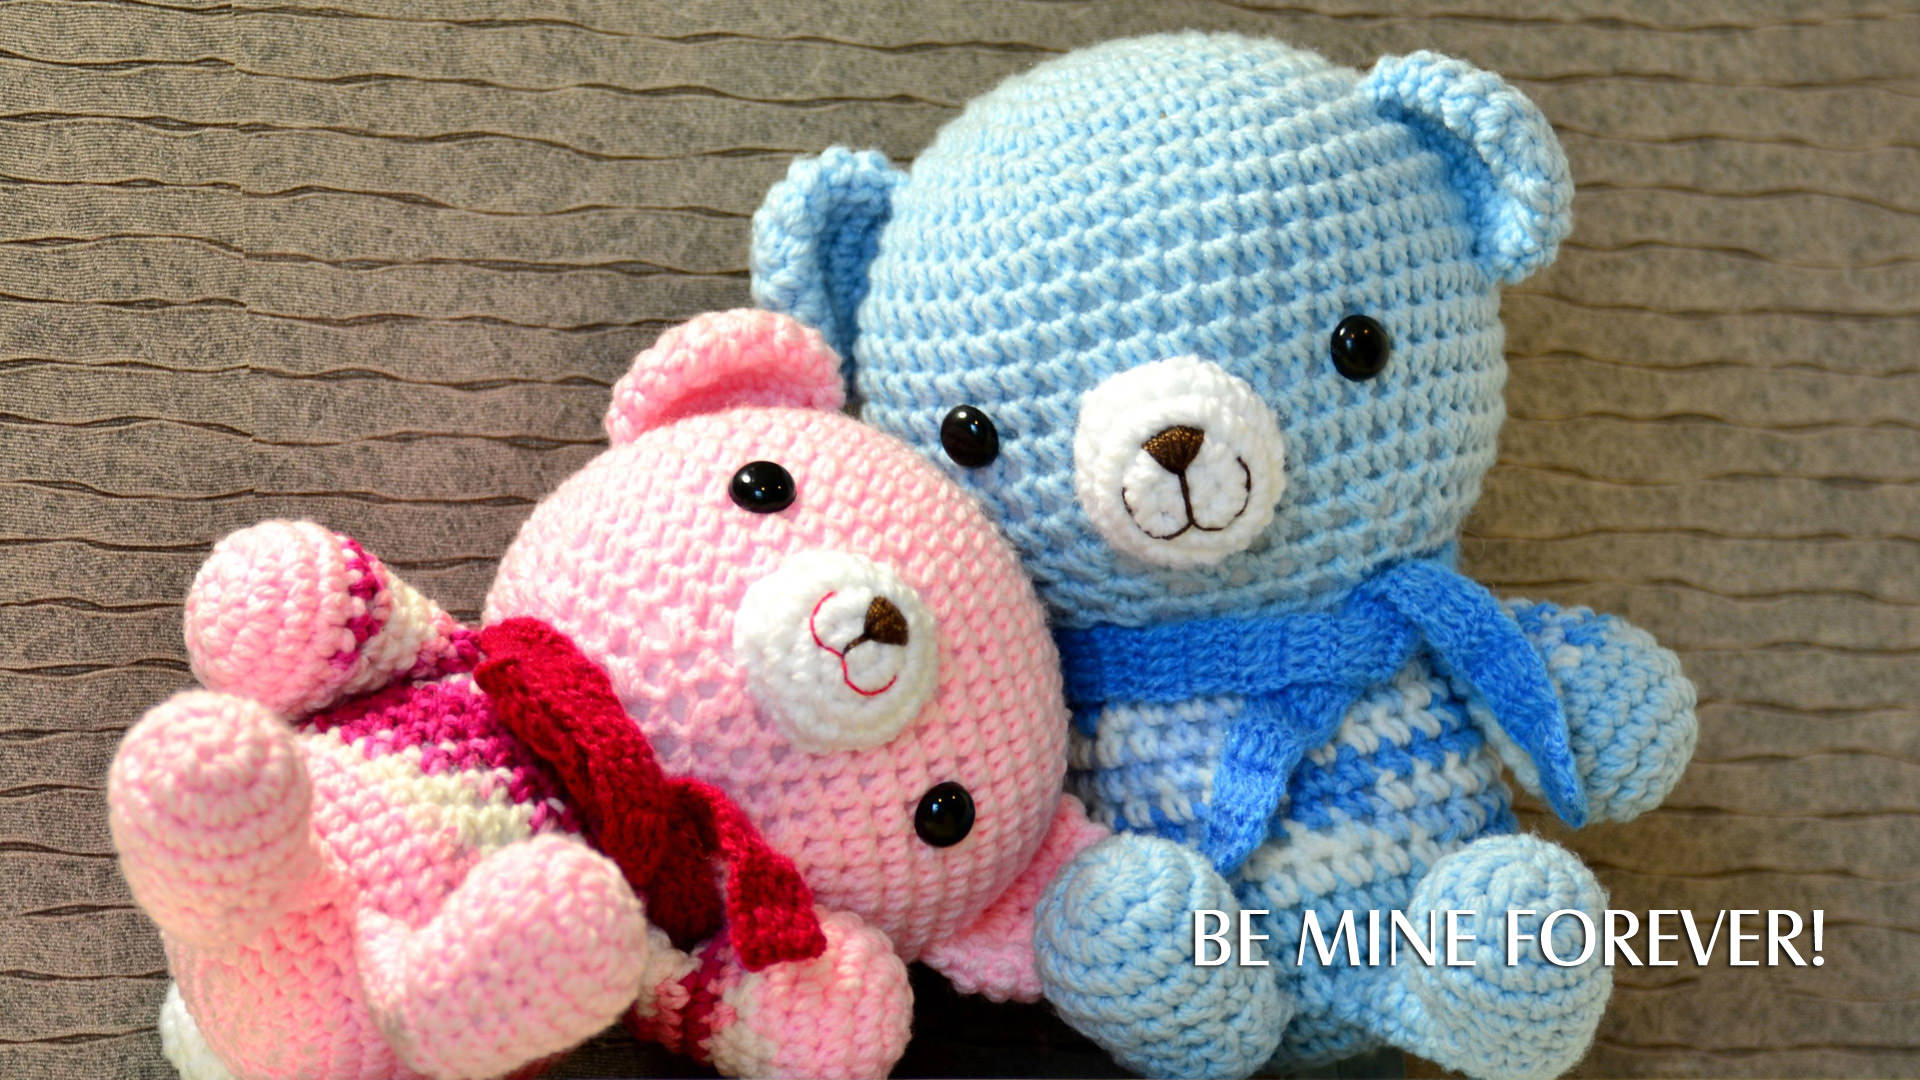 I Love You Teddy Bear Hd Wallpapers Wallpaper Cave - Happy Teddy Day Couple , HD Wallpaper & Backgrounds